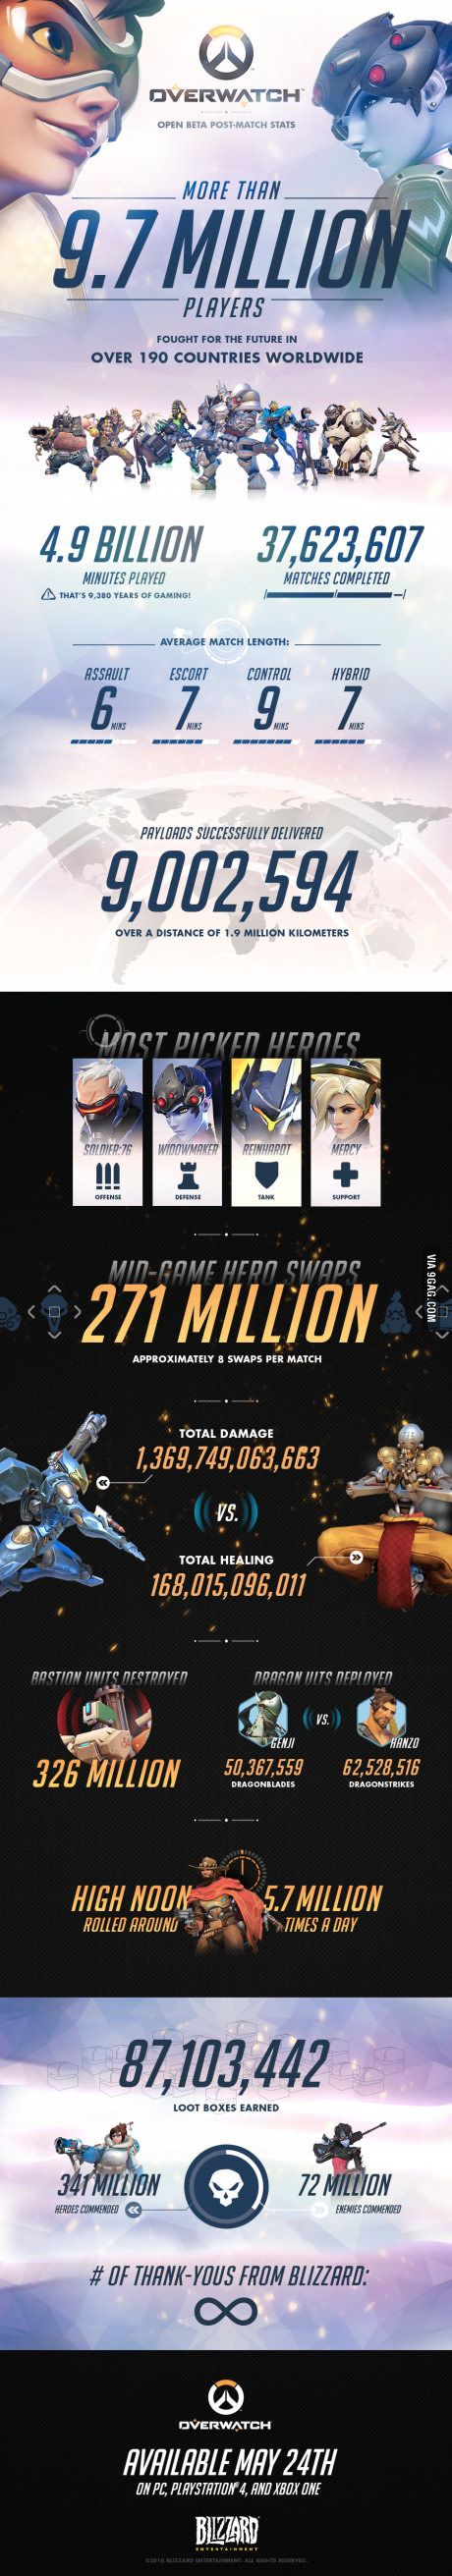 The Overwatch team just dropped this